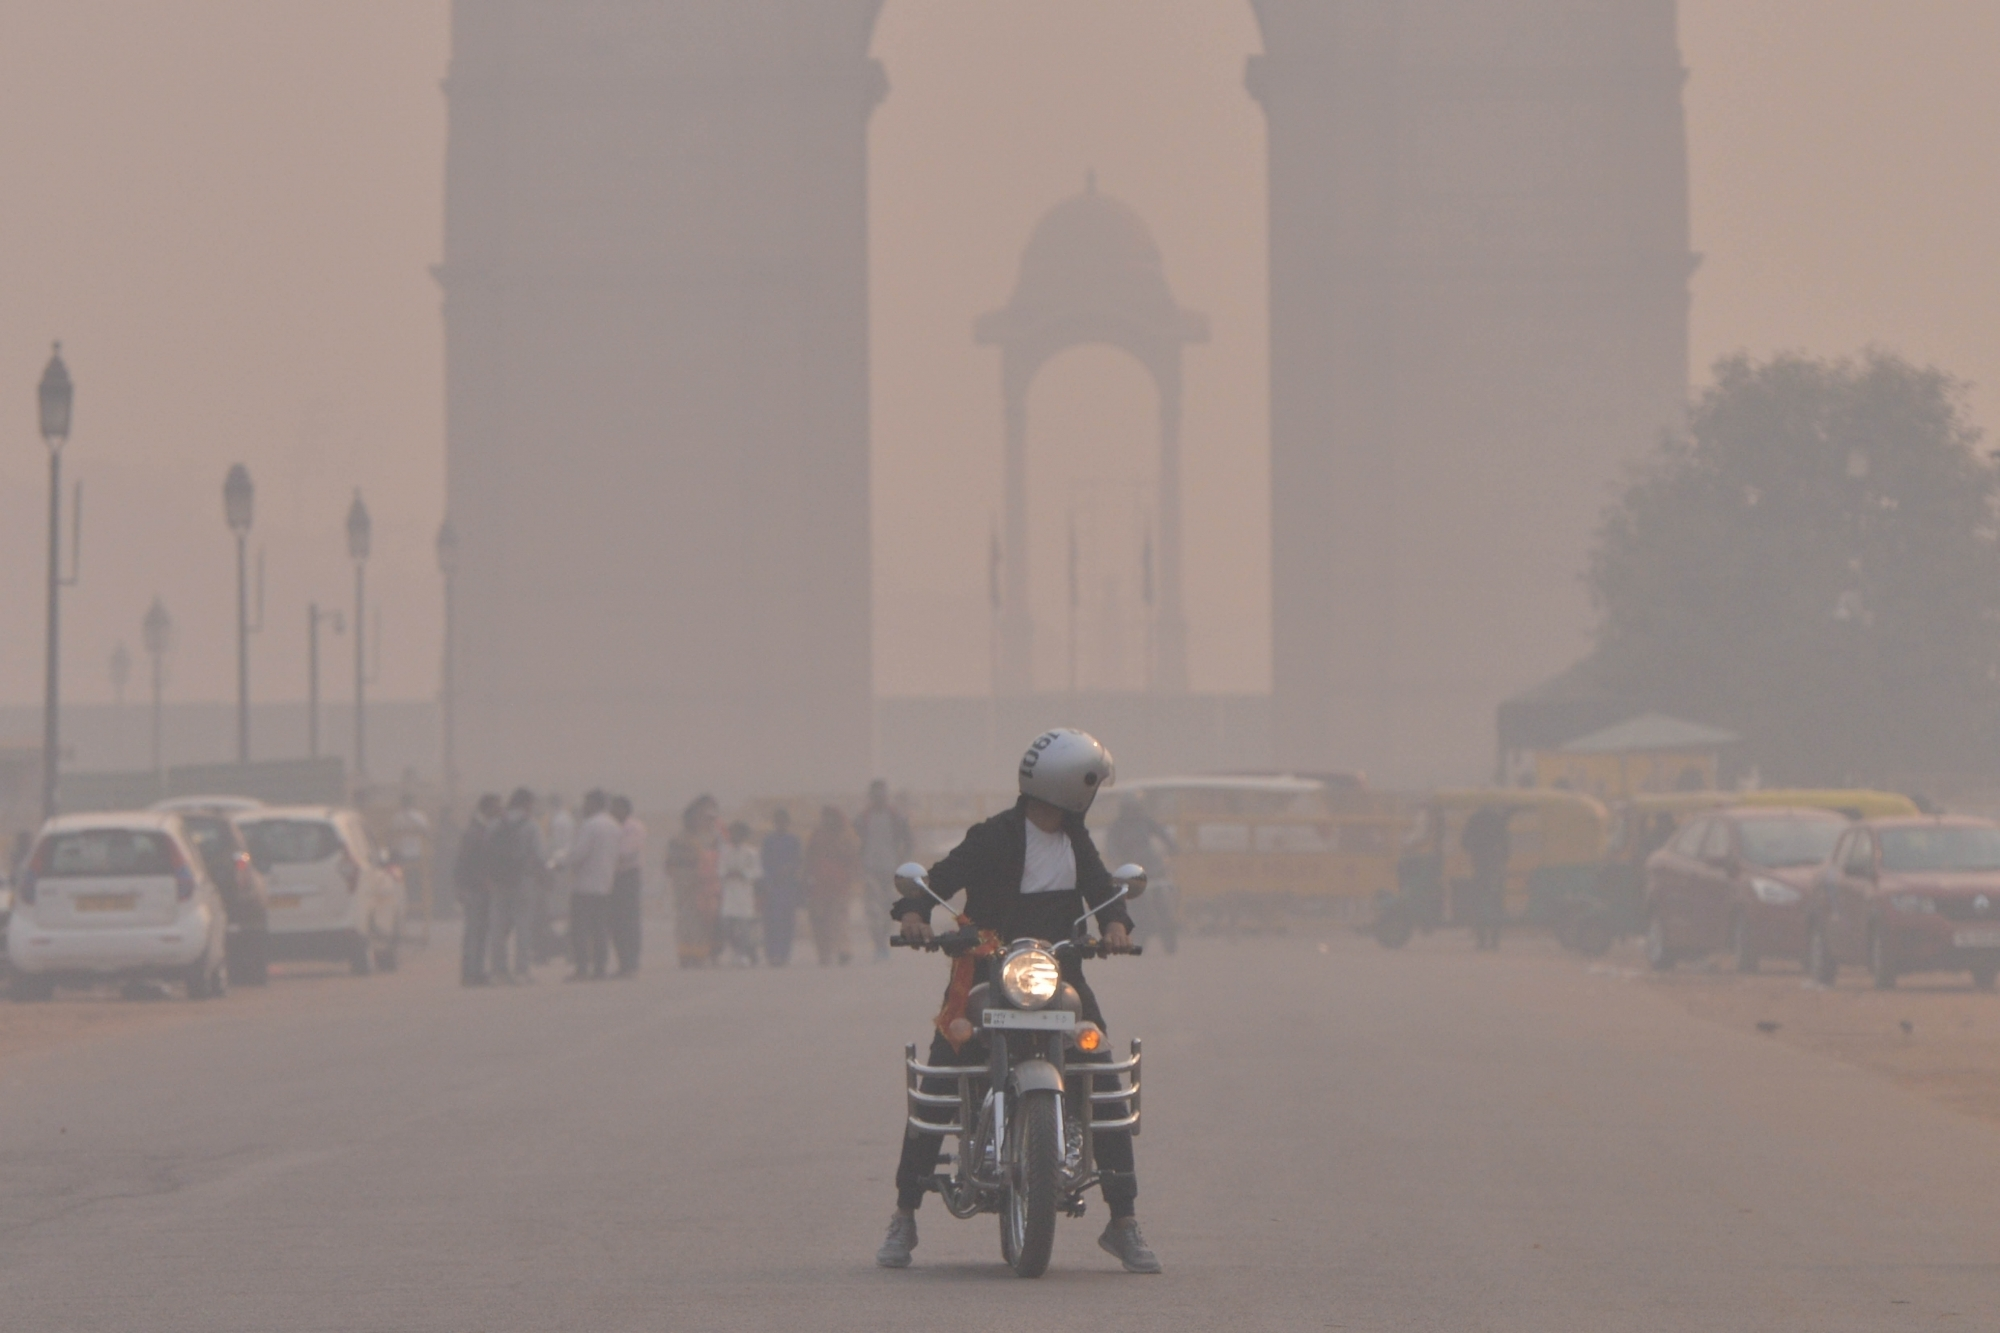 AIBA Women's World Boxing Championships in New Delhi's pollution